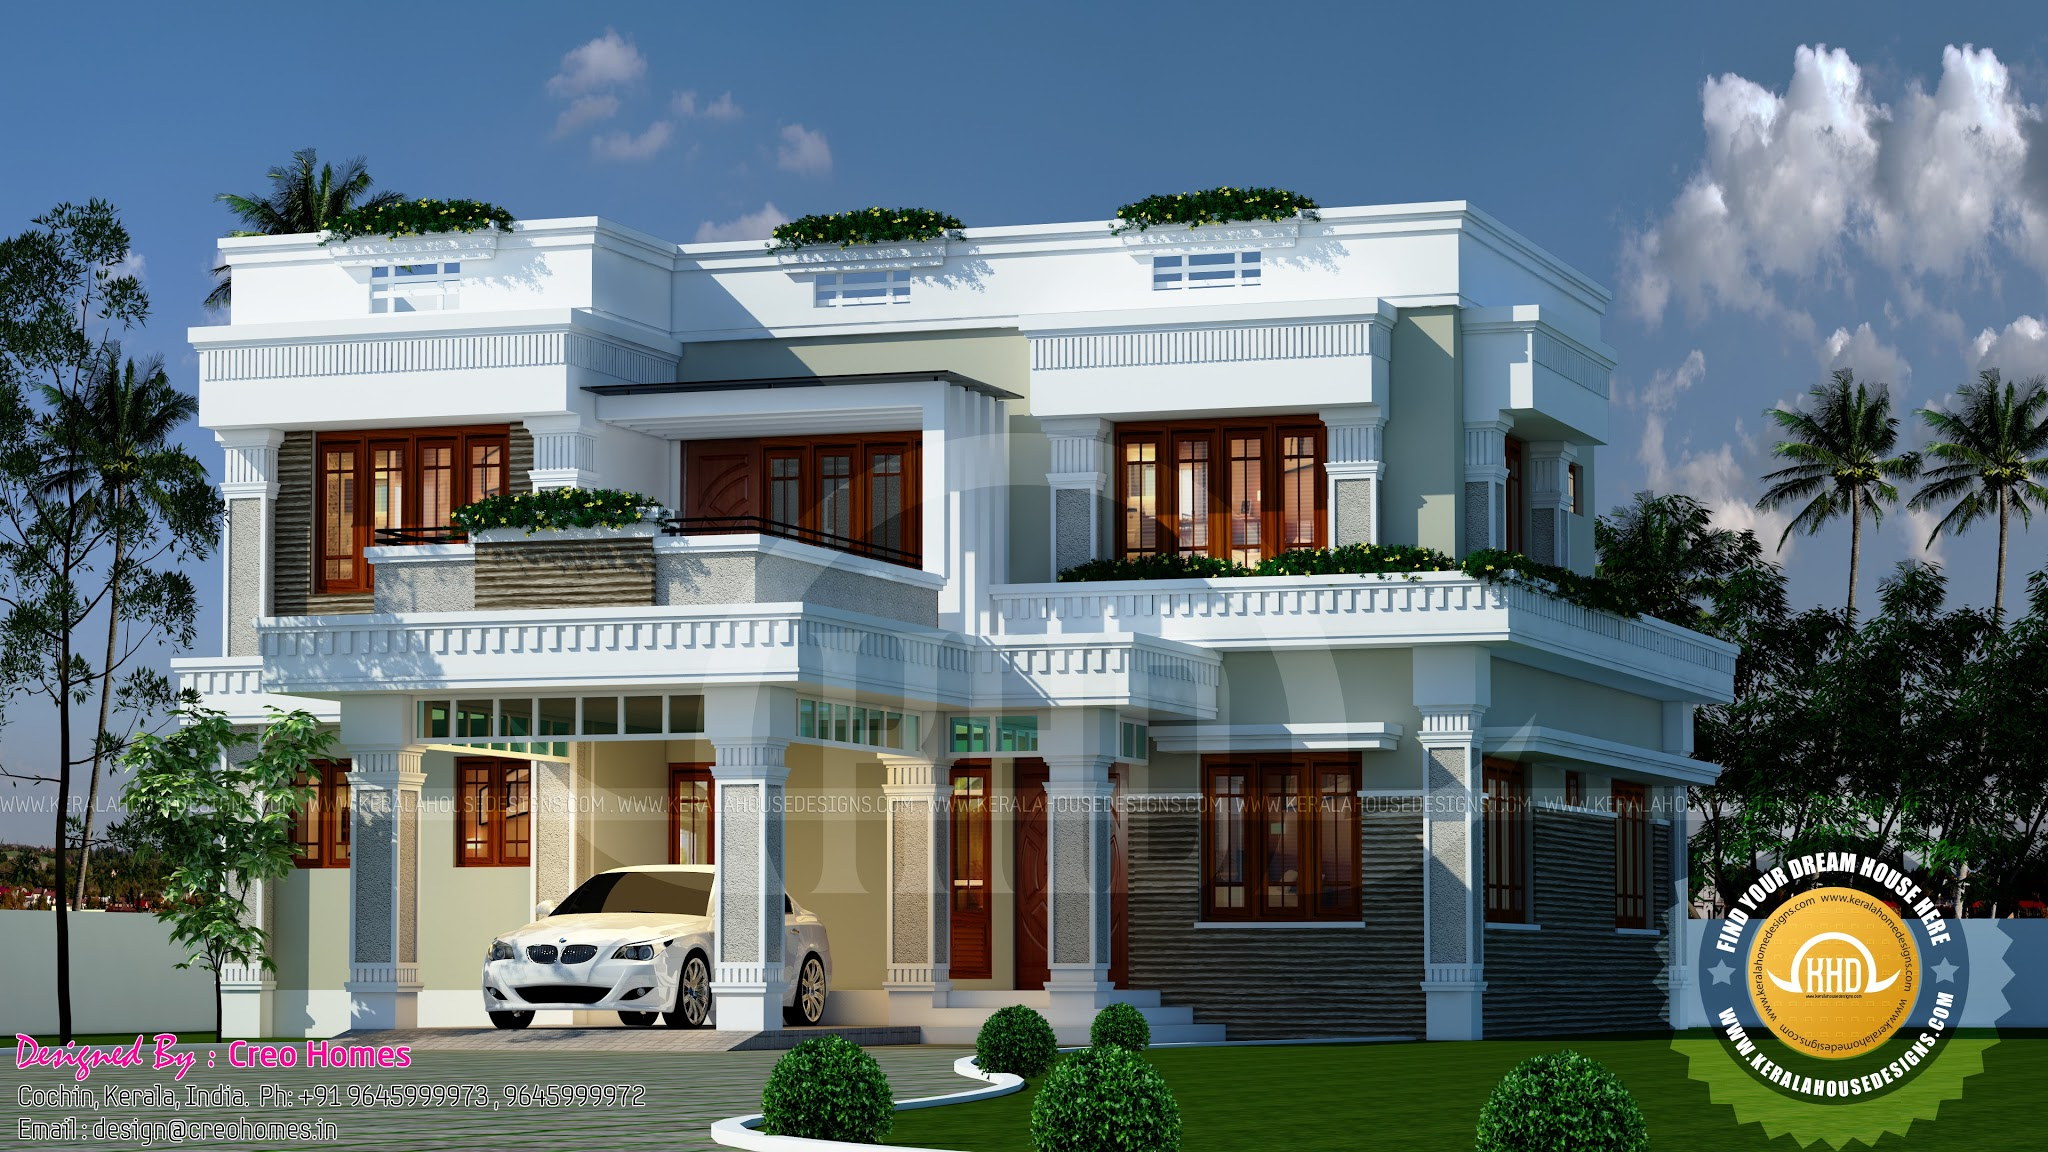 Decorative flat roof home plan kerala home design and floor plans - Kerala exterior model homes ...